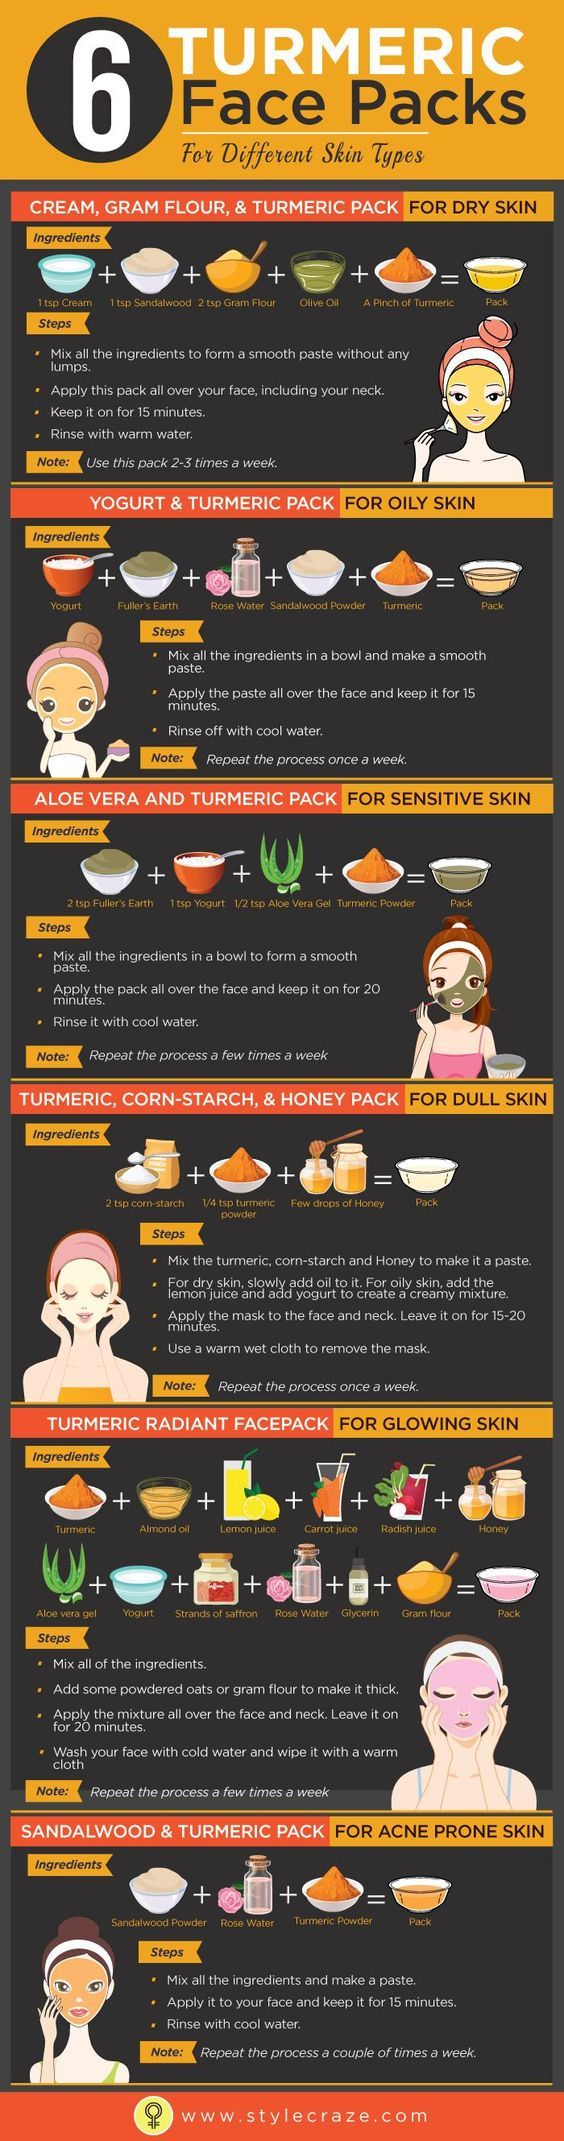 Having sensitive skin can be very uncomfortable and this DIY turmeric face mask takes care of that. With the addition of Aloe Vera, angry and irritated skin will surely be a thing of the past.